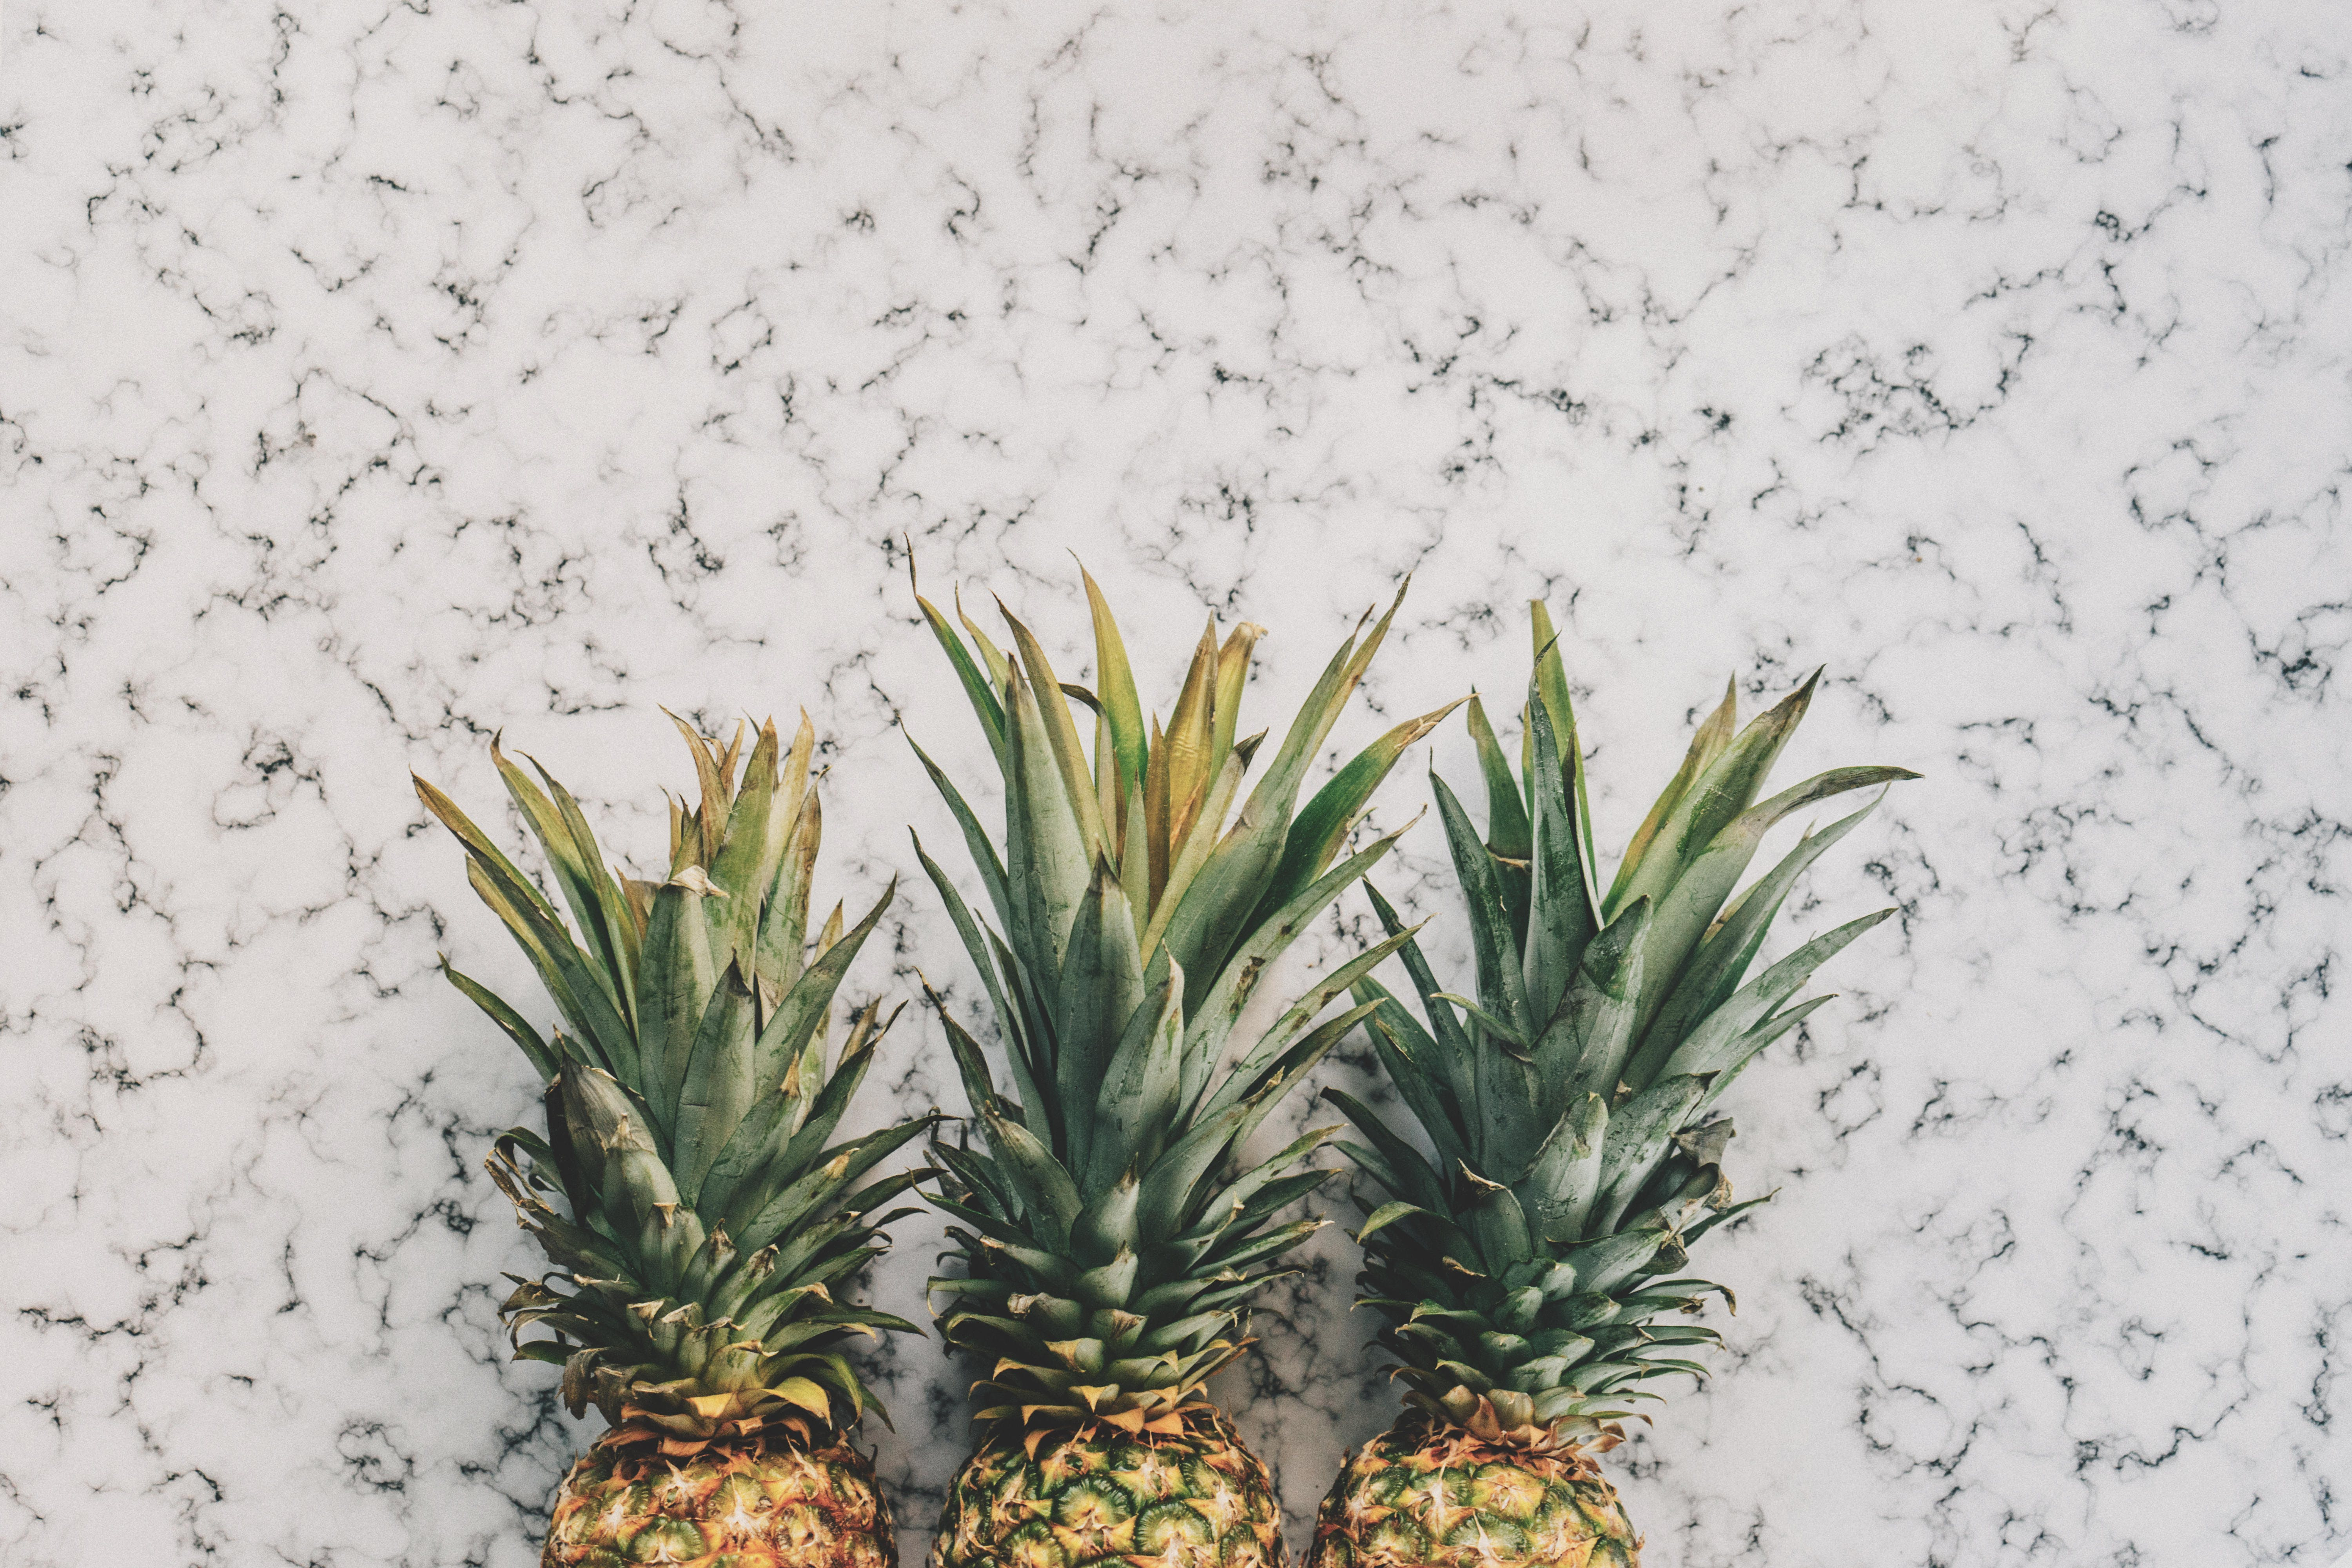 3 Pineapple Fruit on White and Grey Sand